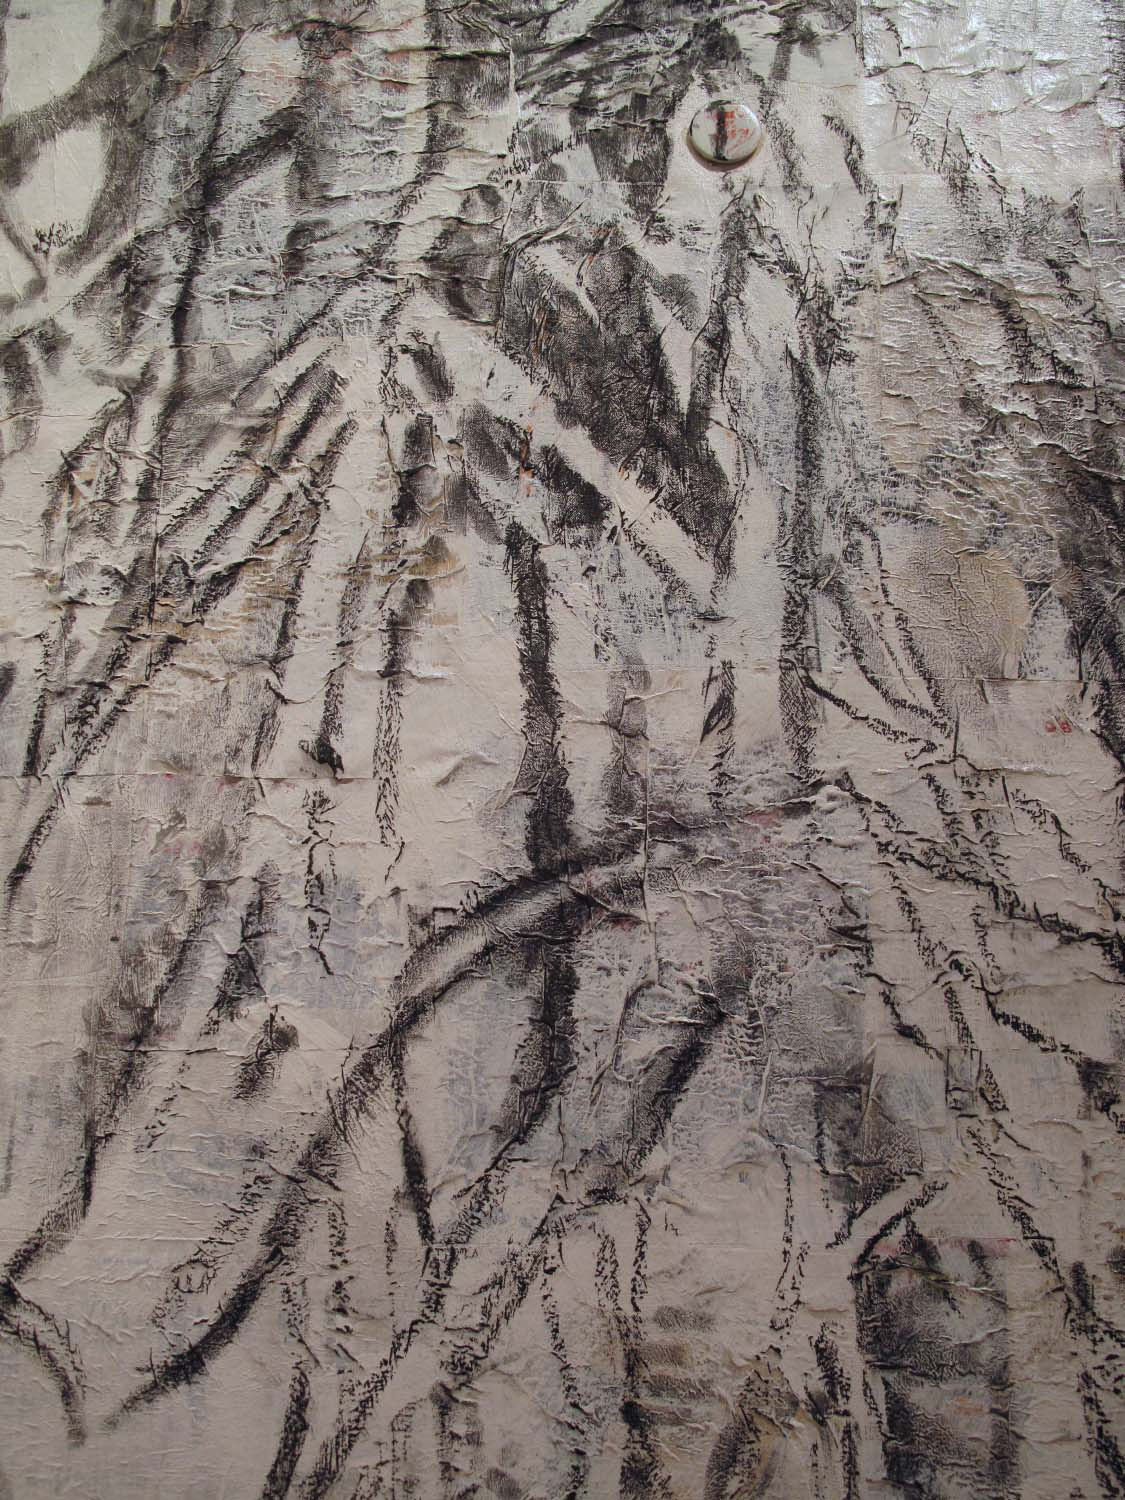 2ah(1)-Detail of Shrub, charcoal, gesso, collage on canvas.jpg